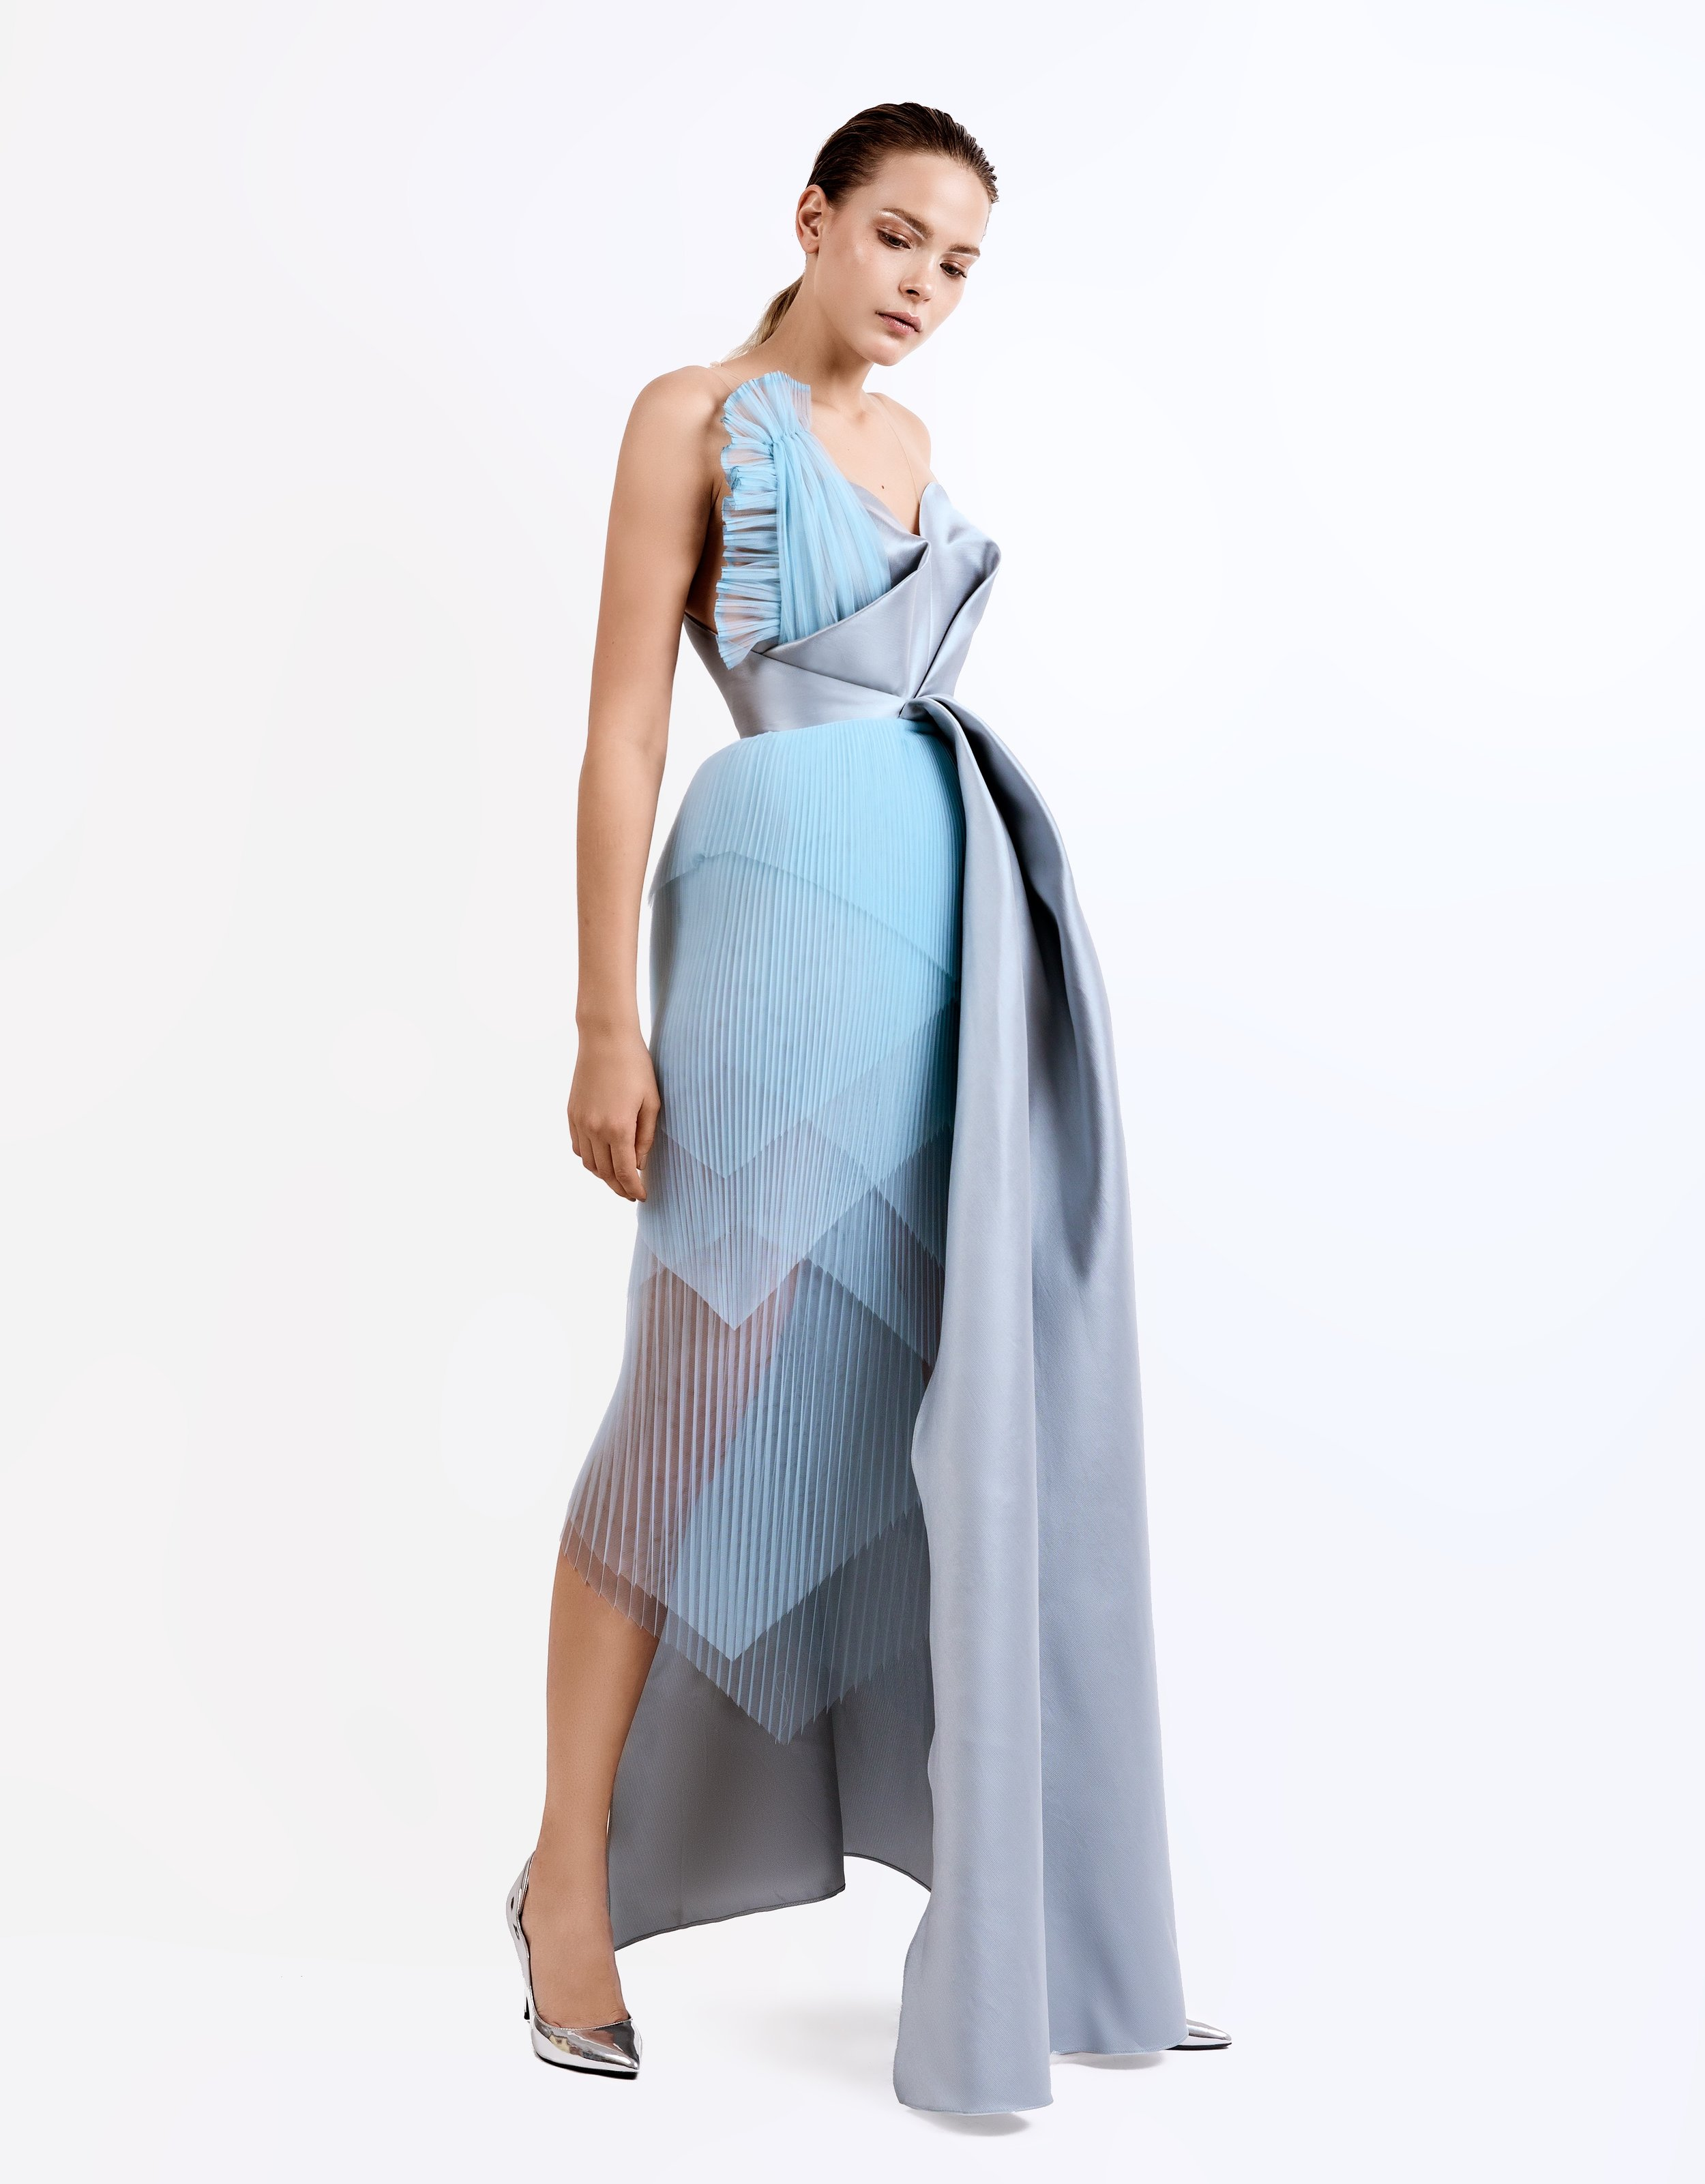 SS19021   Paola  draped dress with layered pleated tulle